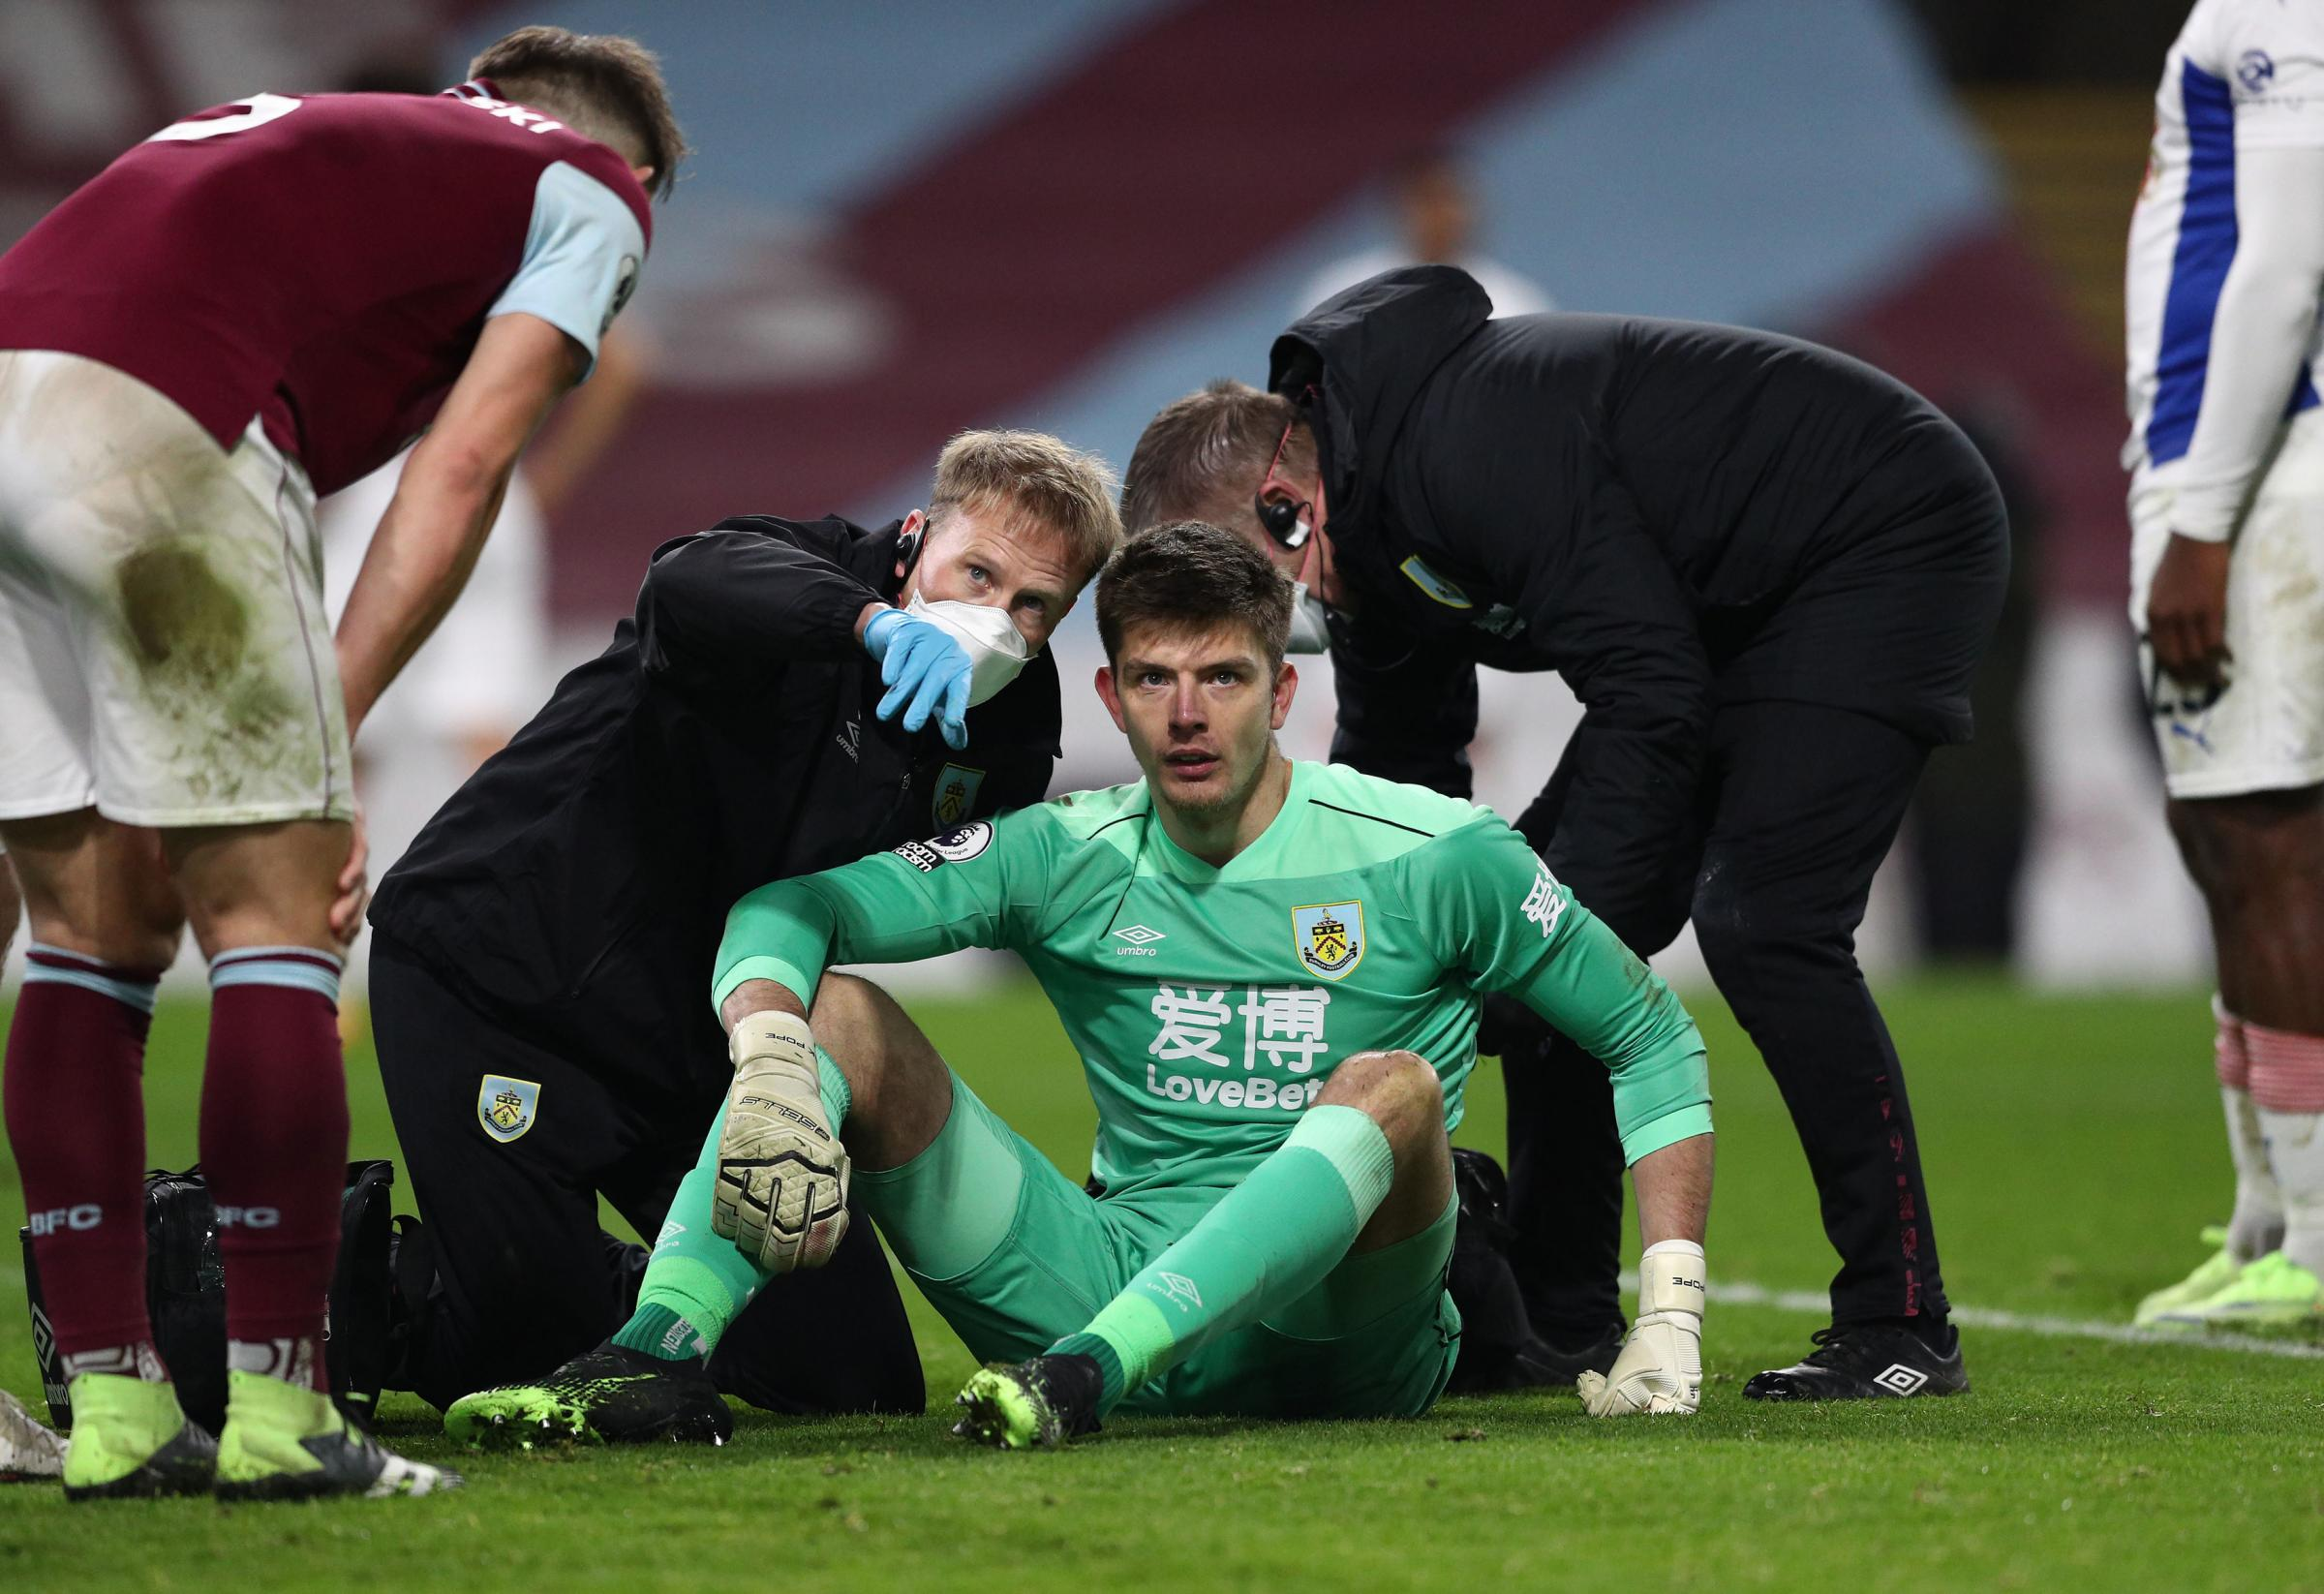 Burnley suffer major injury blow ahead of Manchester City trip